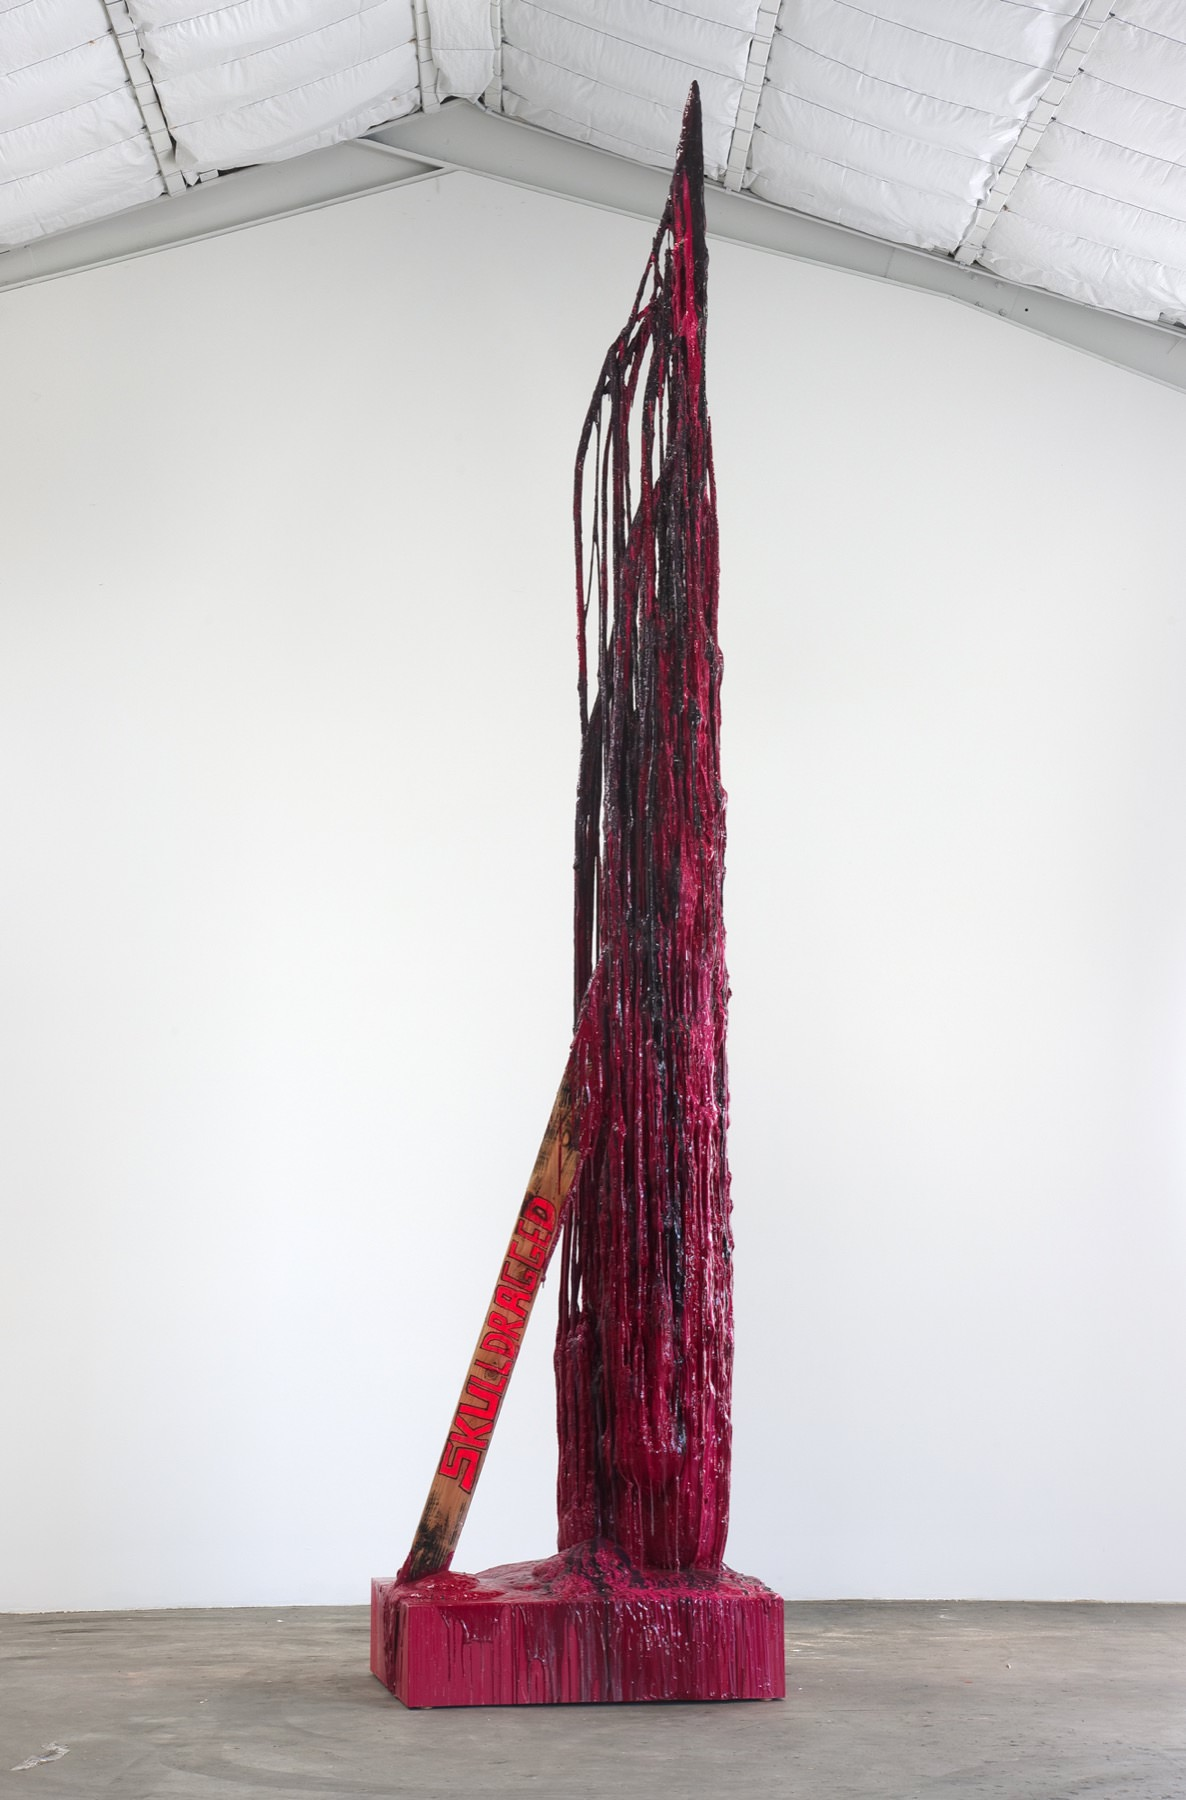 Image of Sterling Ruby, Monument Stalagmite/Skulldragged, 2010